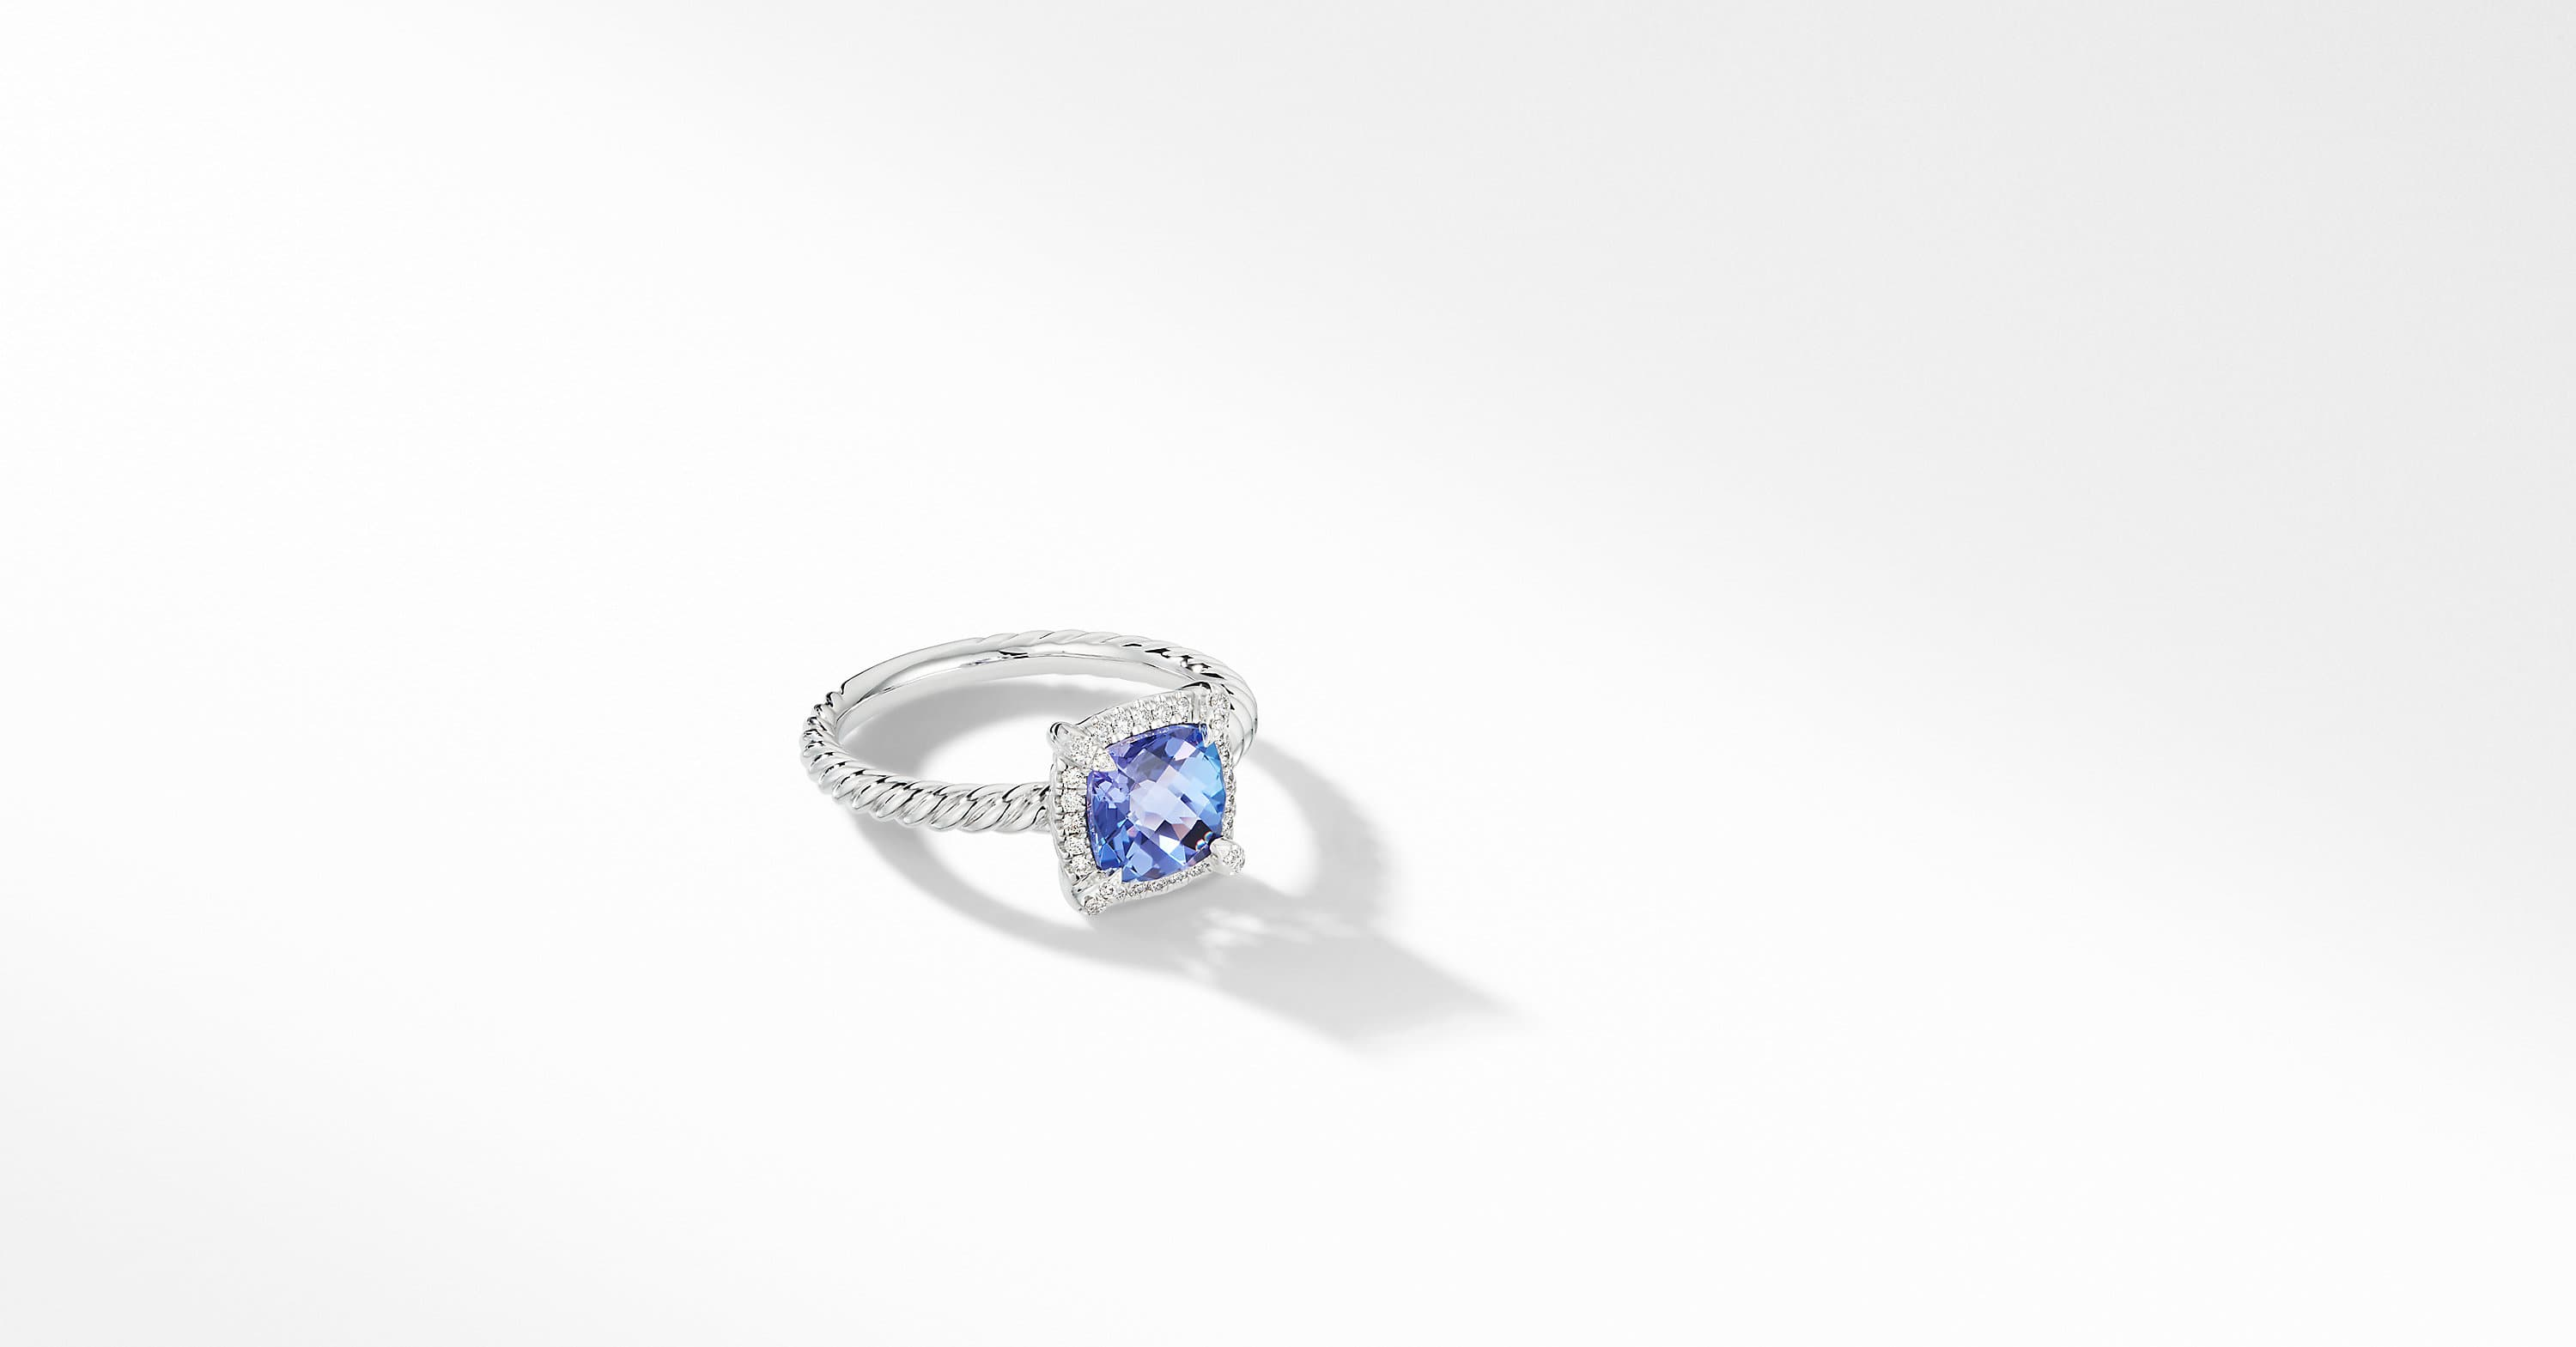 Petite Chatelaine Pavé Bezel Ring in 18K White Gold, 7mm